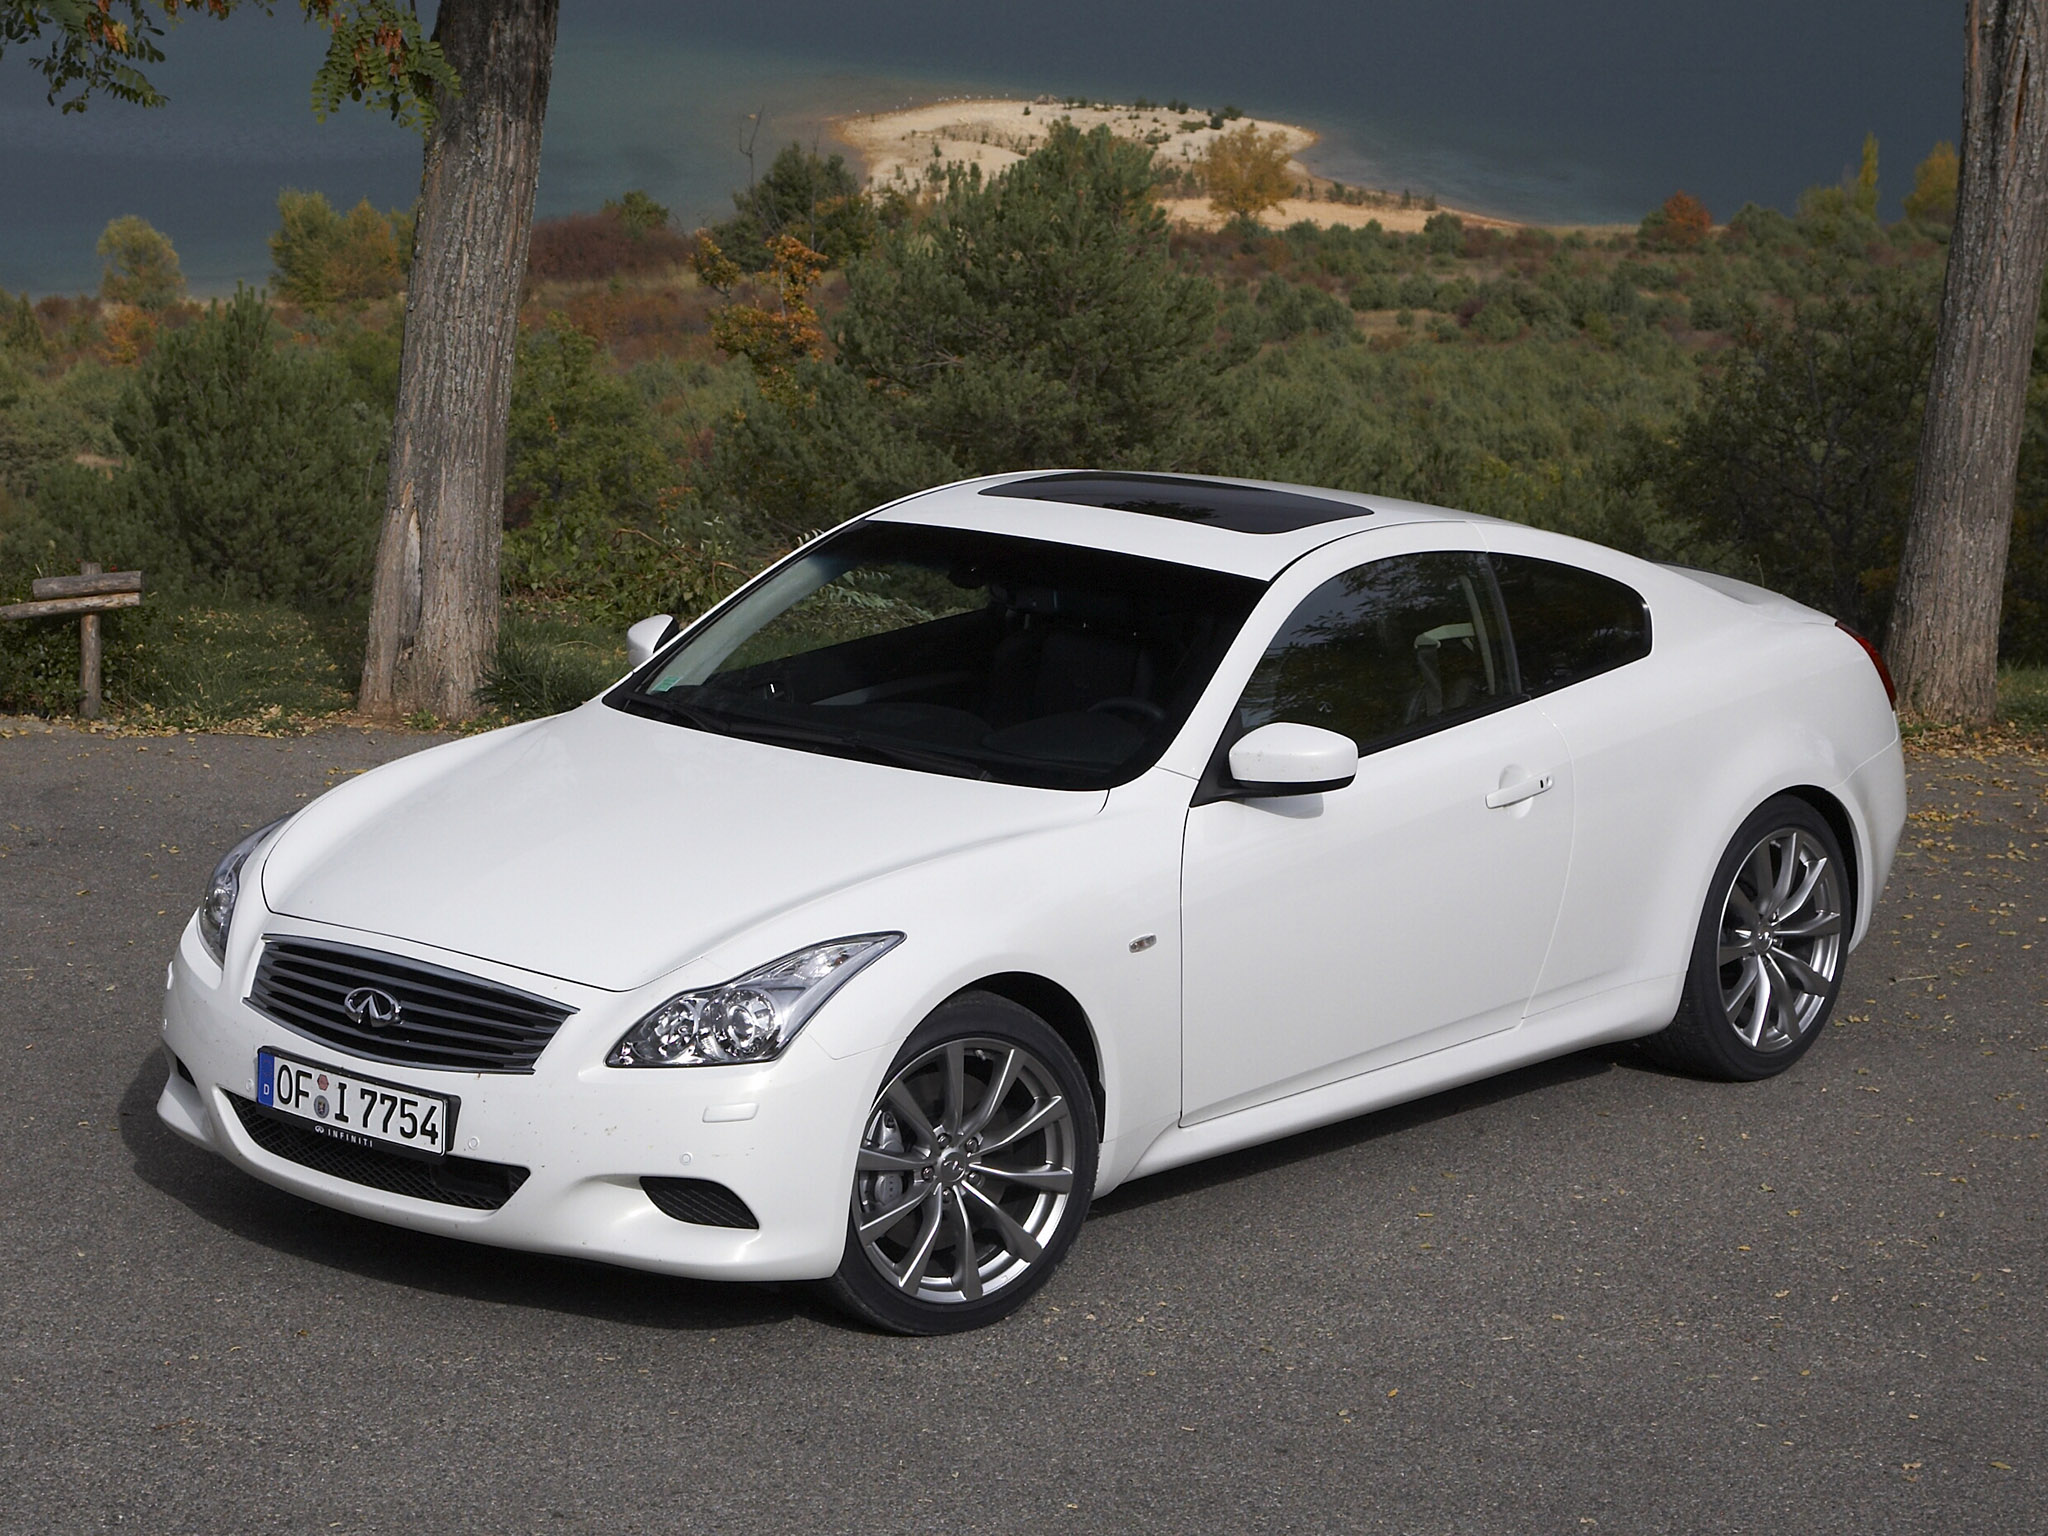 g37 infiniti coupe database specs